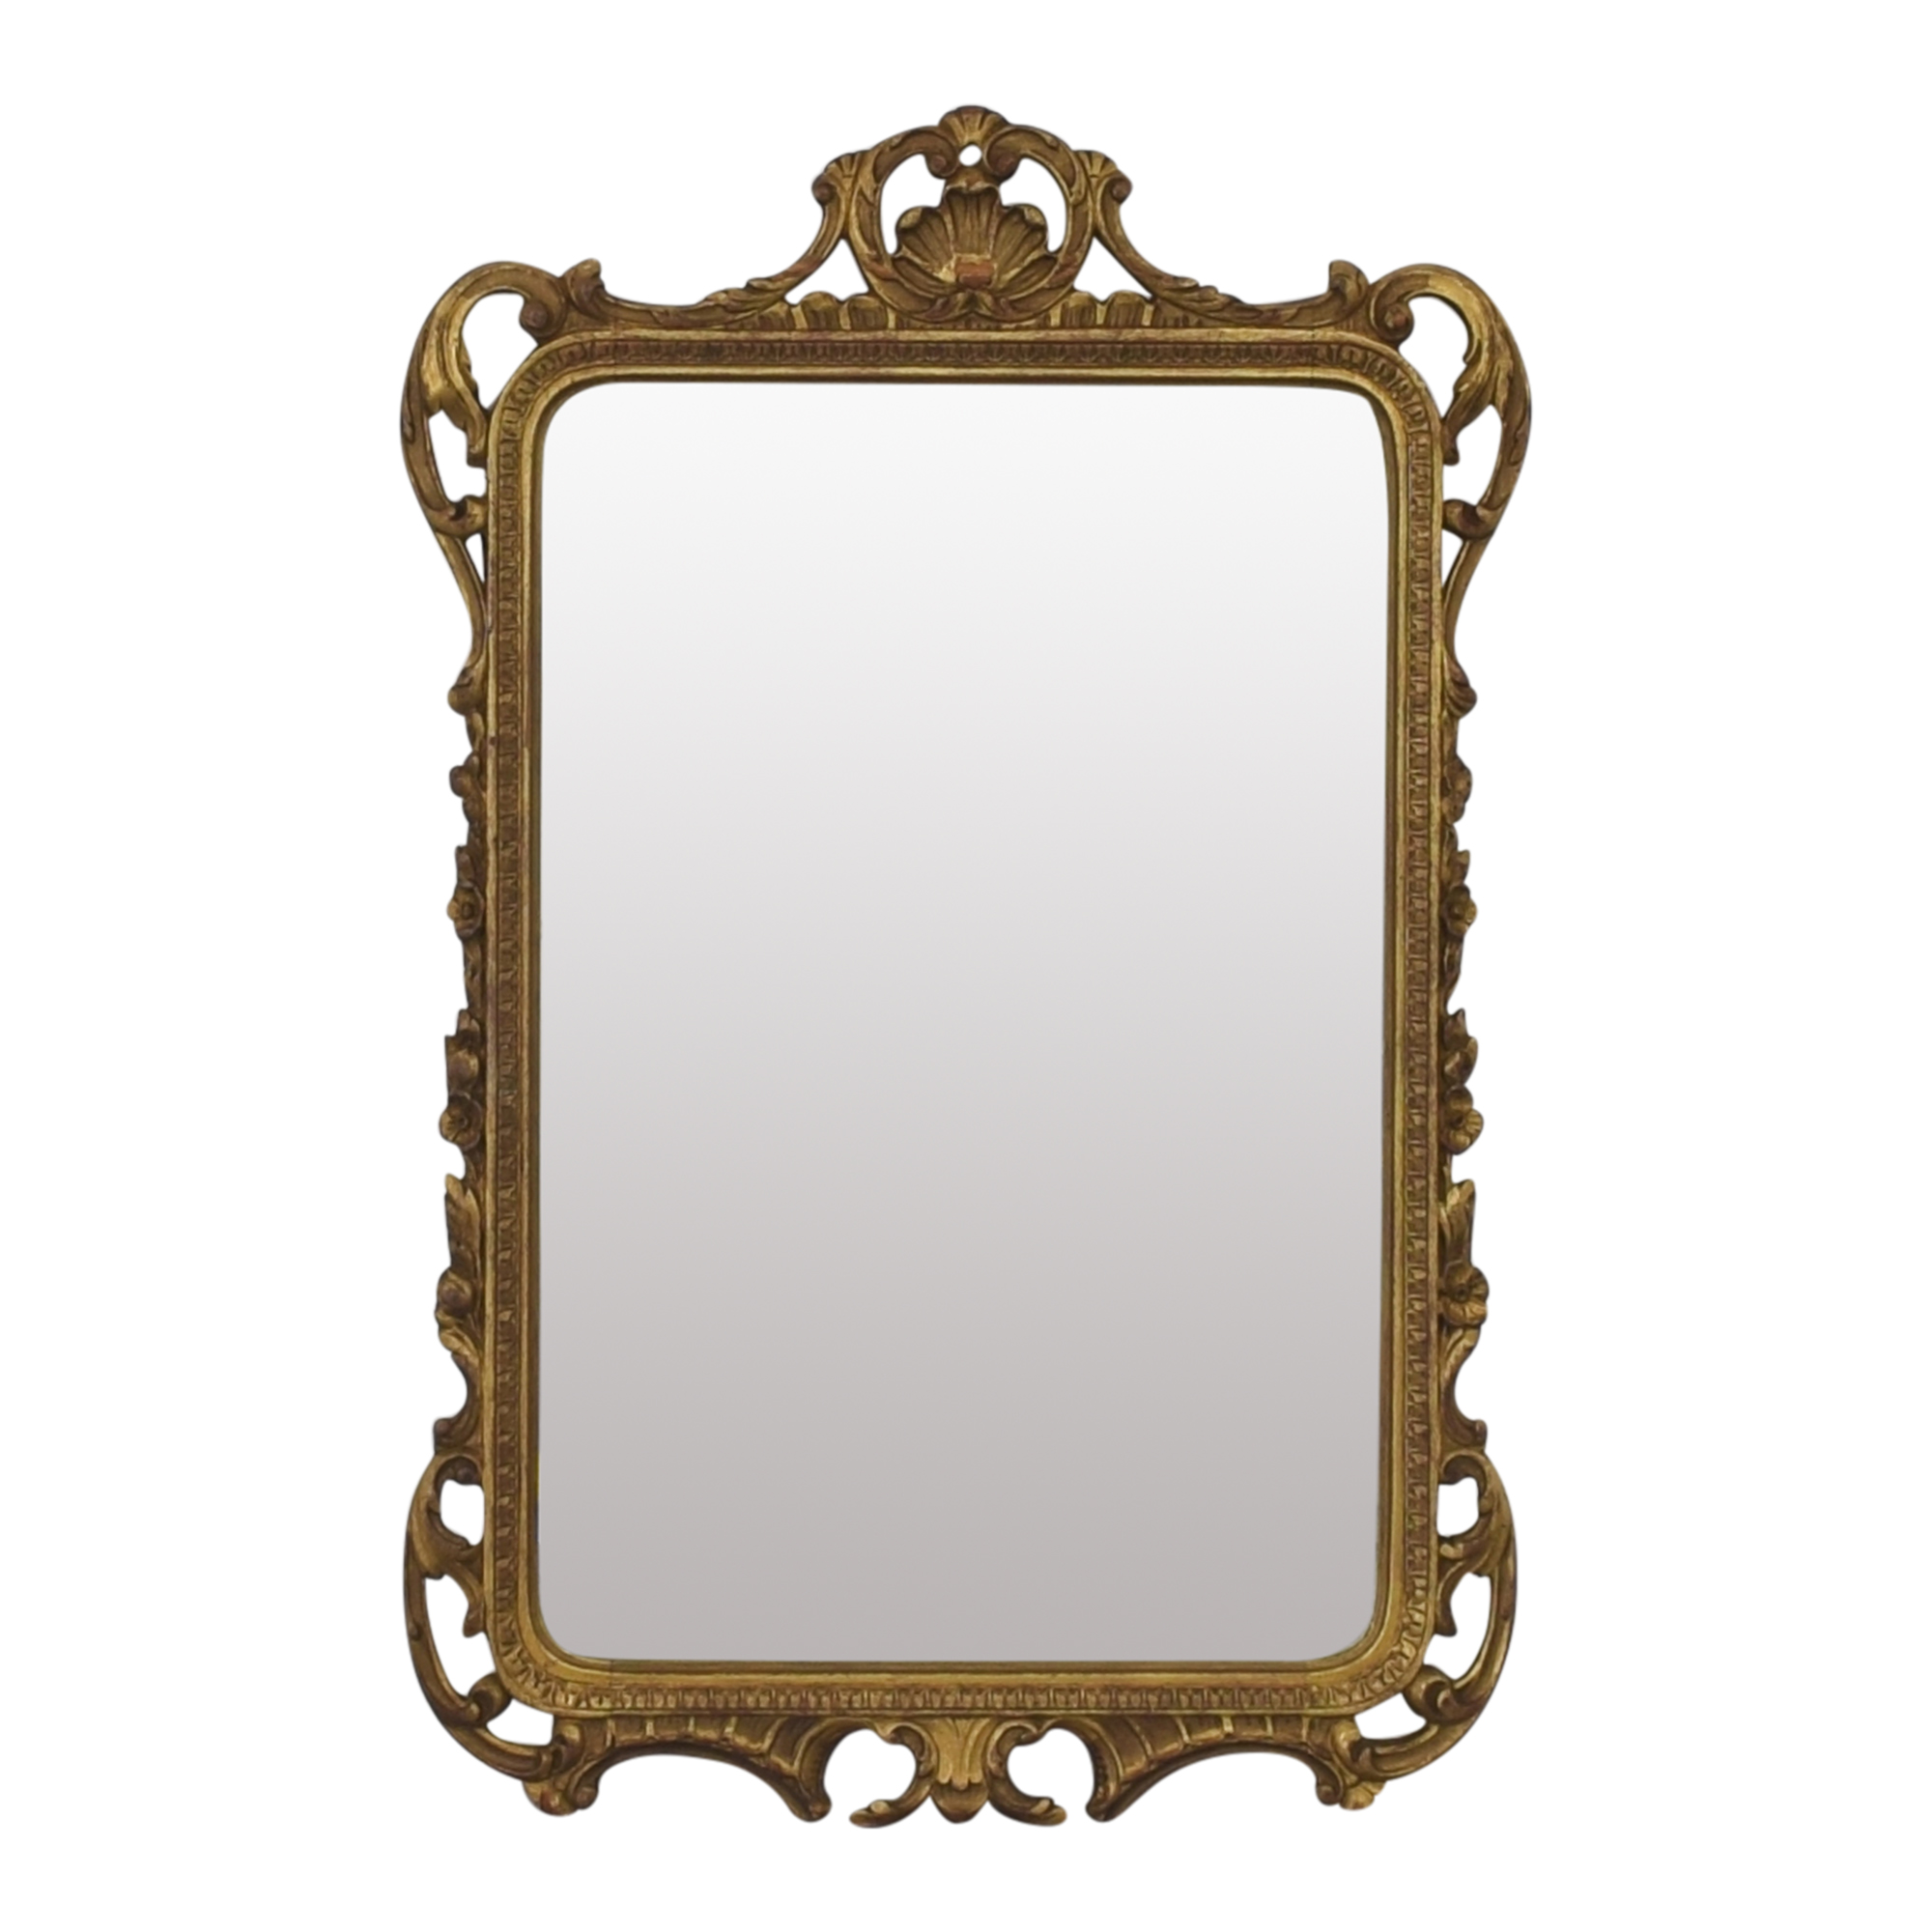 Vintage Mirror with Decorative Frame dimensions